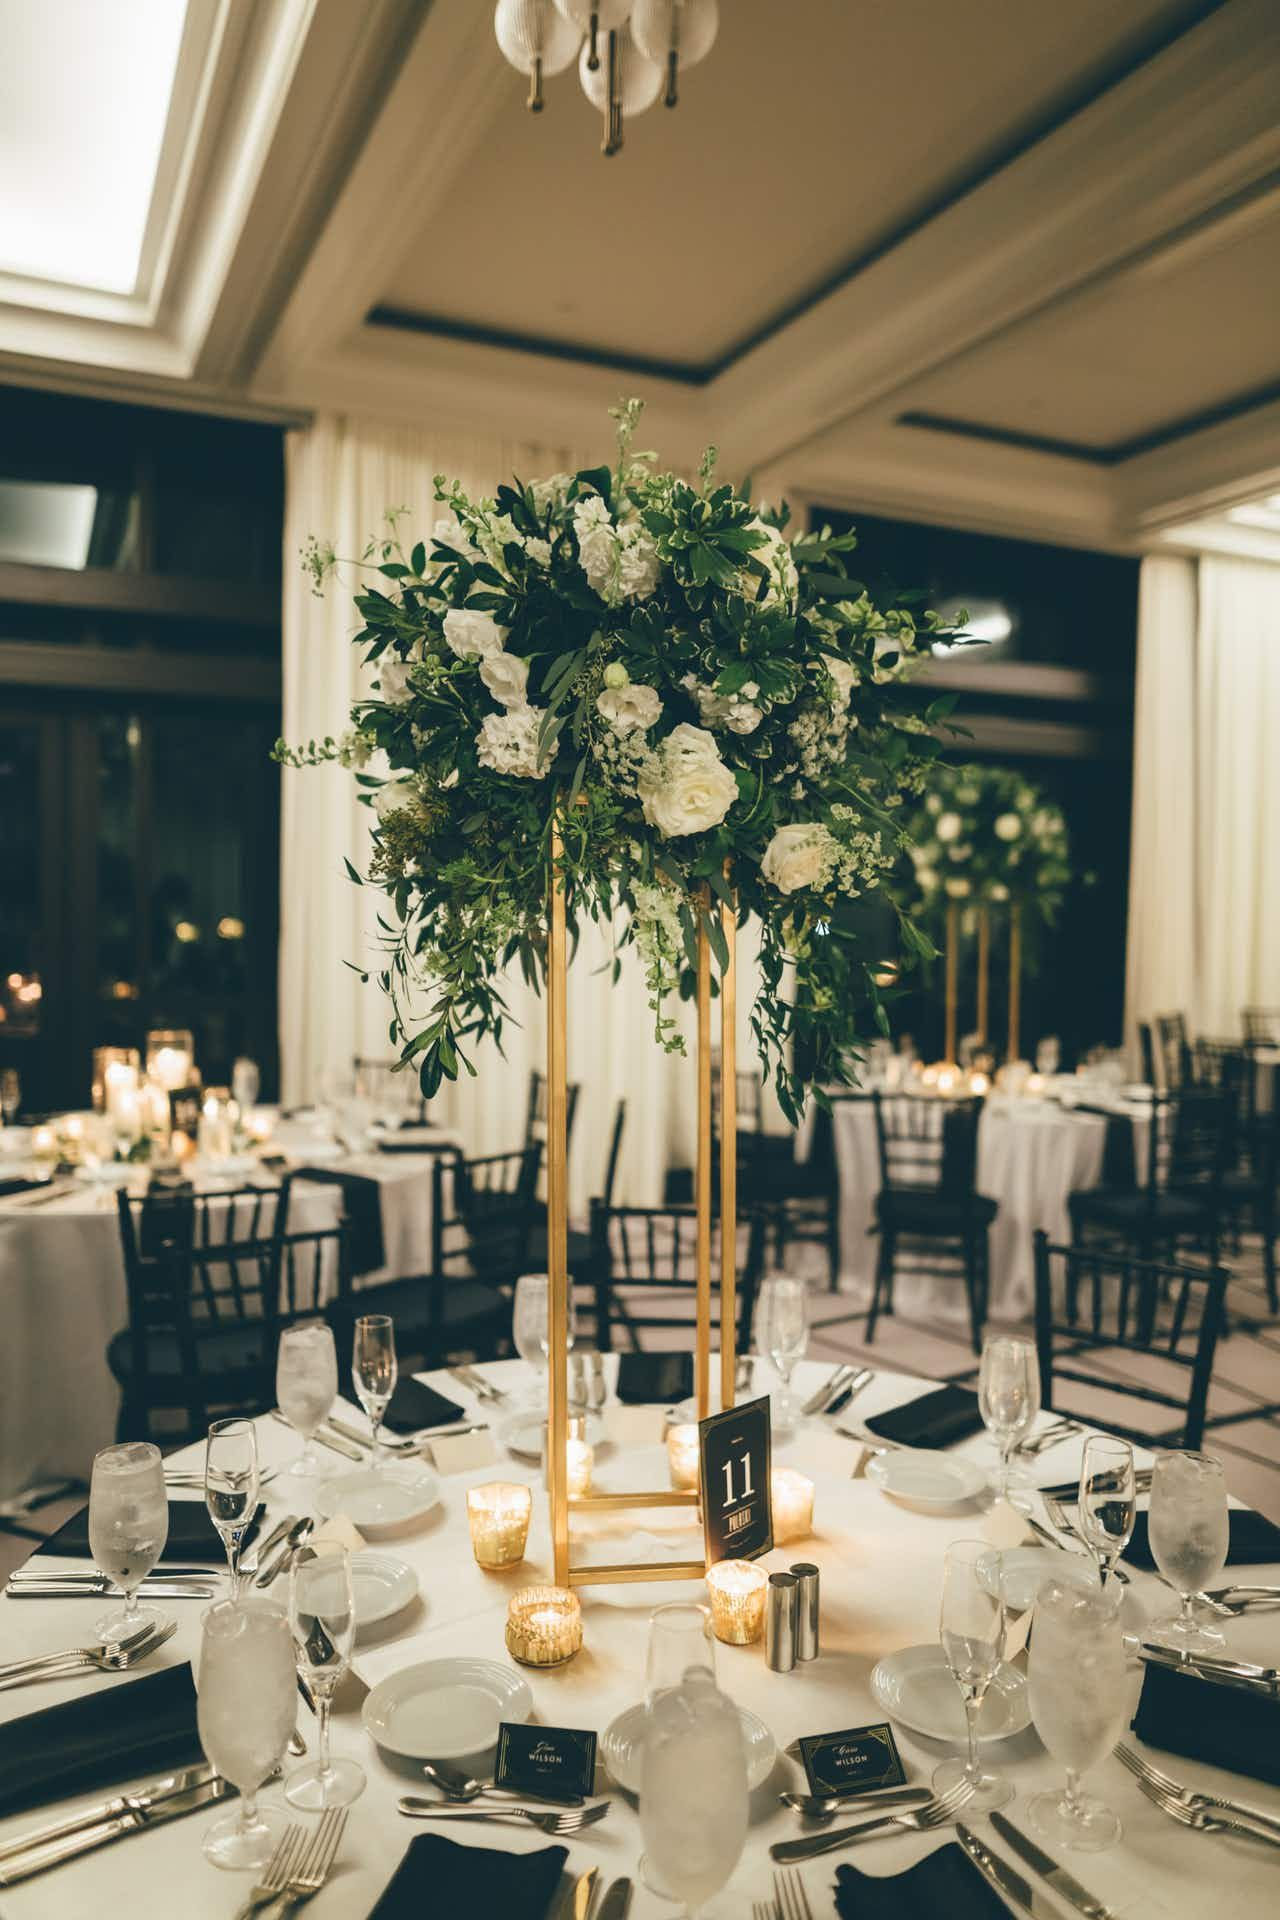 An Elegant Rooftop Wedding at Perry Lane Hotel in 2020